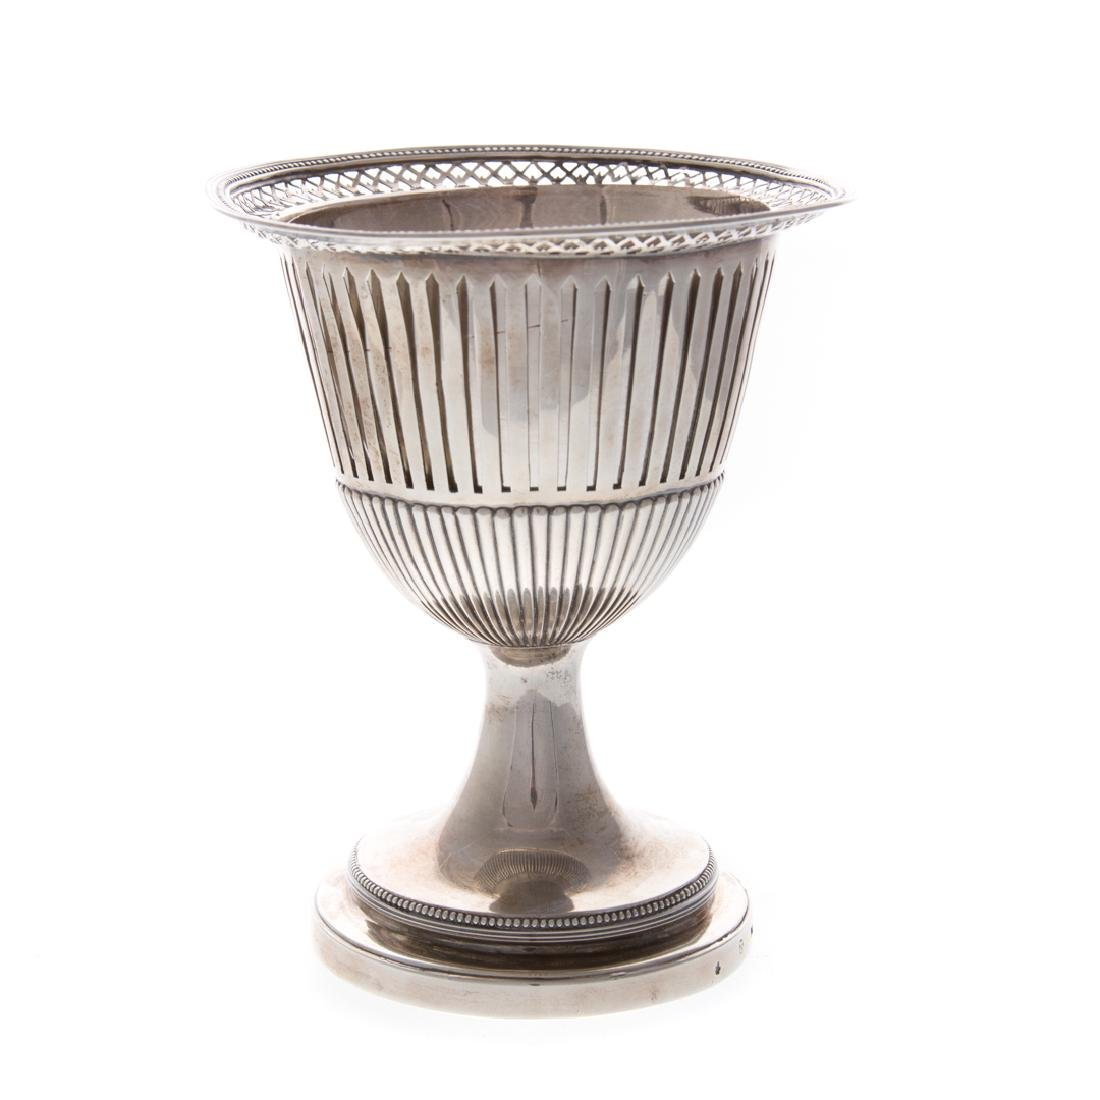 Dutch reticulated silver chalice